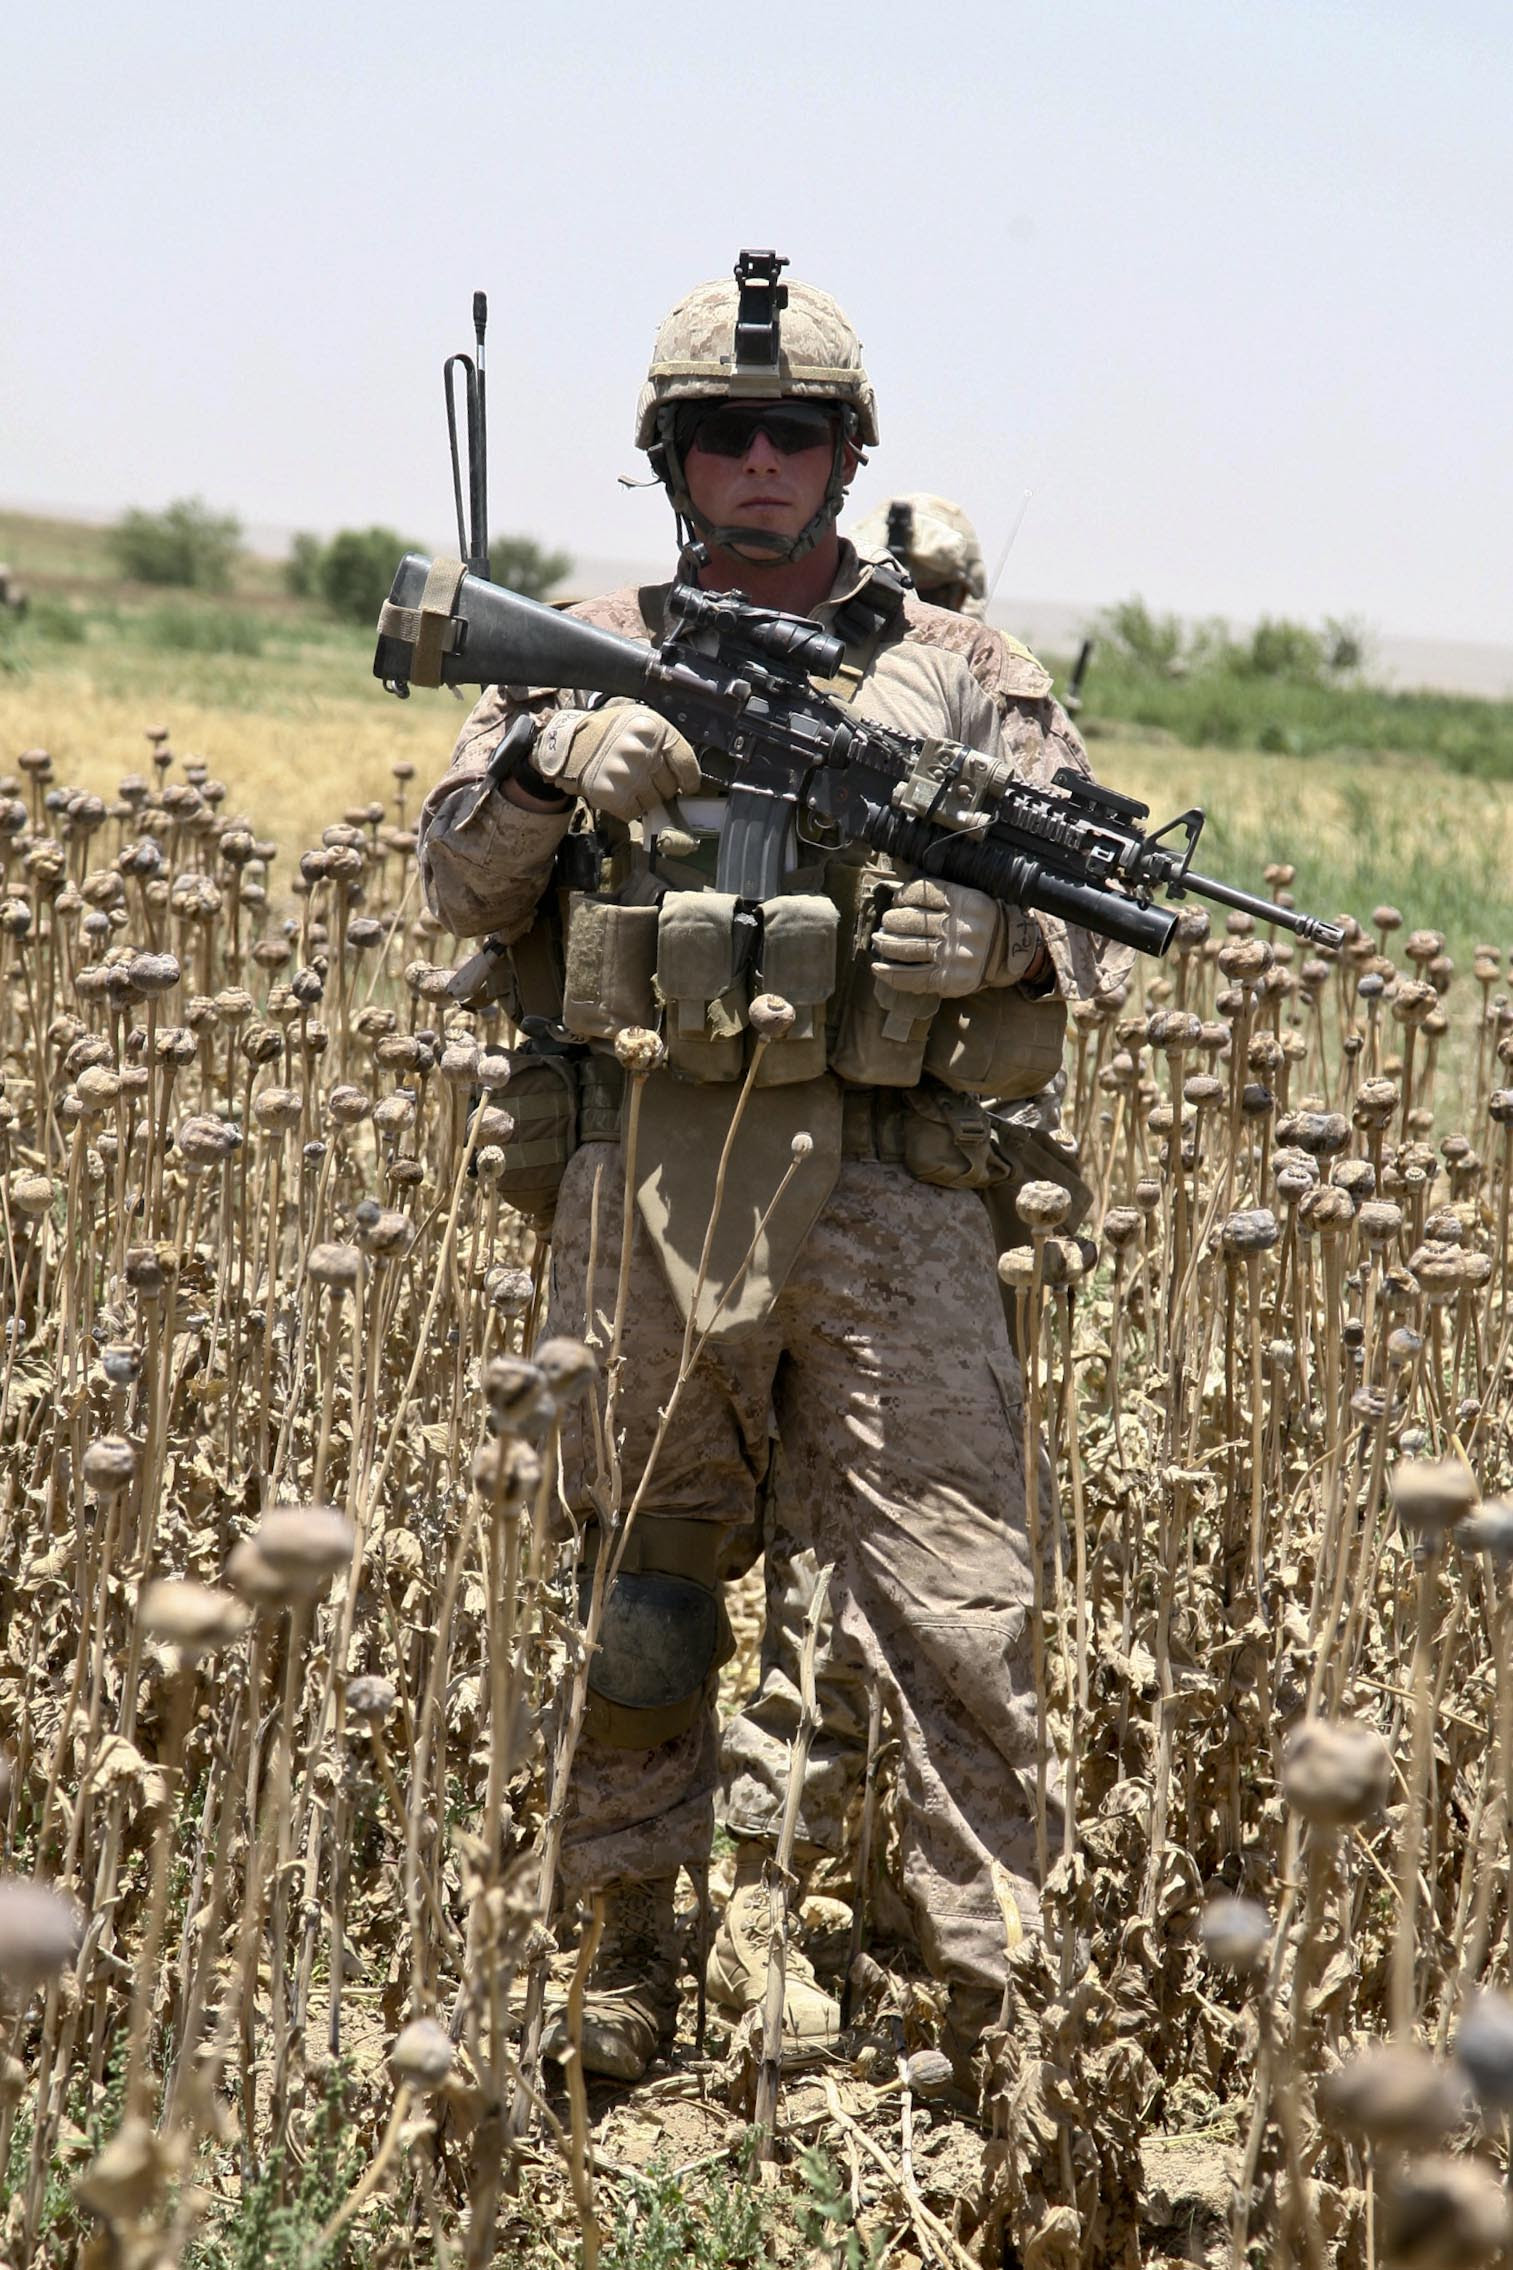 U.S. Marine Corps Cpl. James K. Peters stands in an opium poppy field while performing a foot patrol at Sangin, Afghanistan, May 19, 2011. (U.S. Marine Corps photo by Cpl. Jeremy C. Harris/Released)